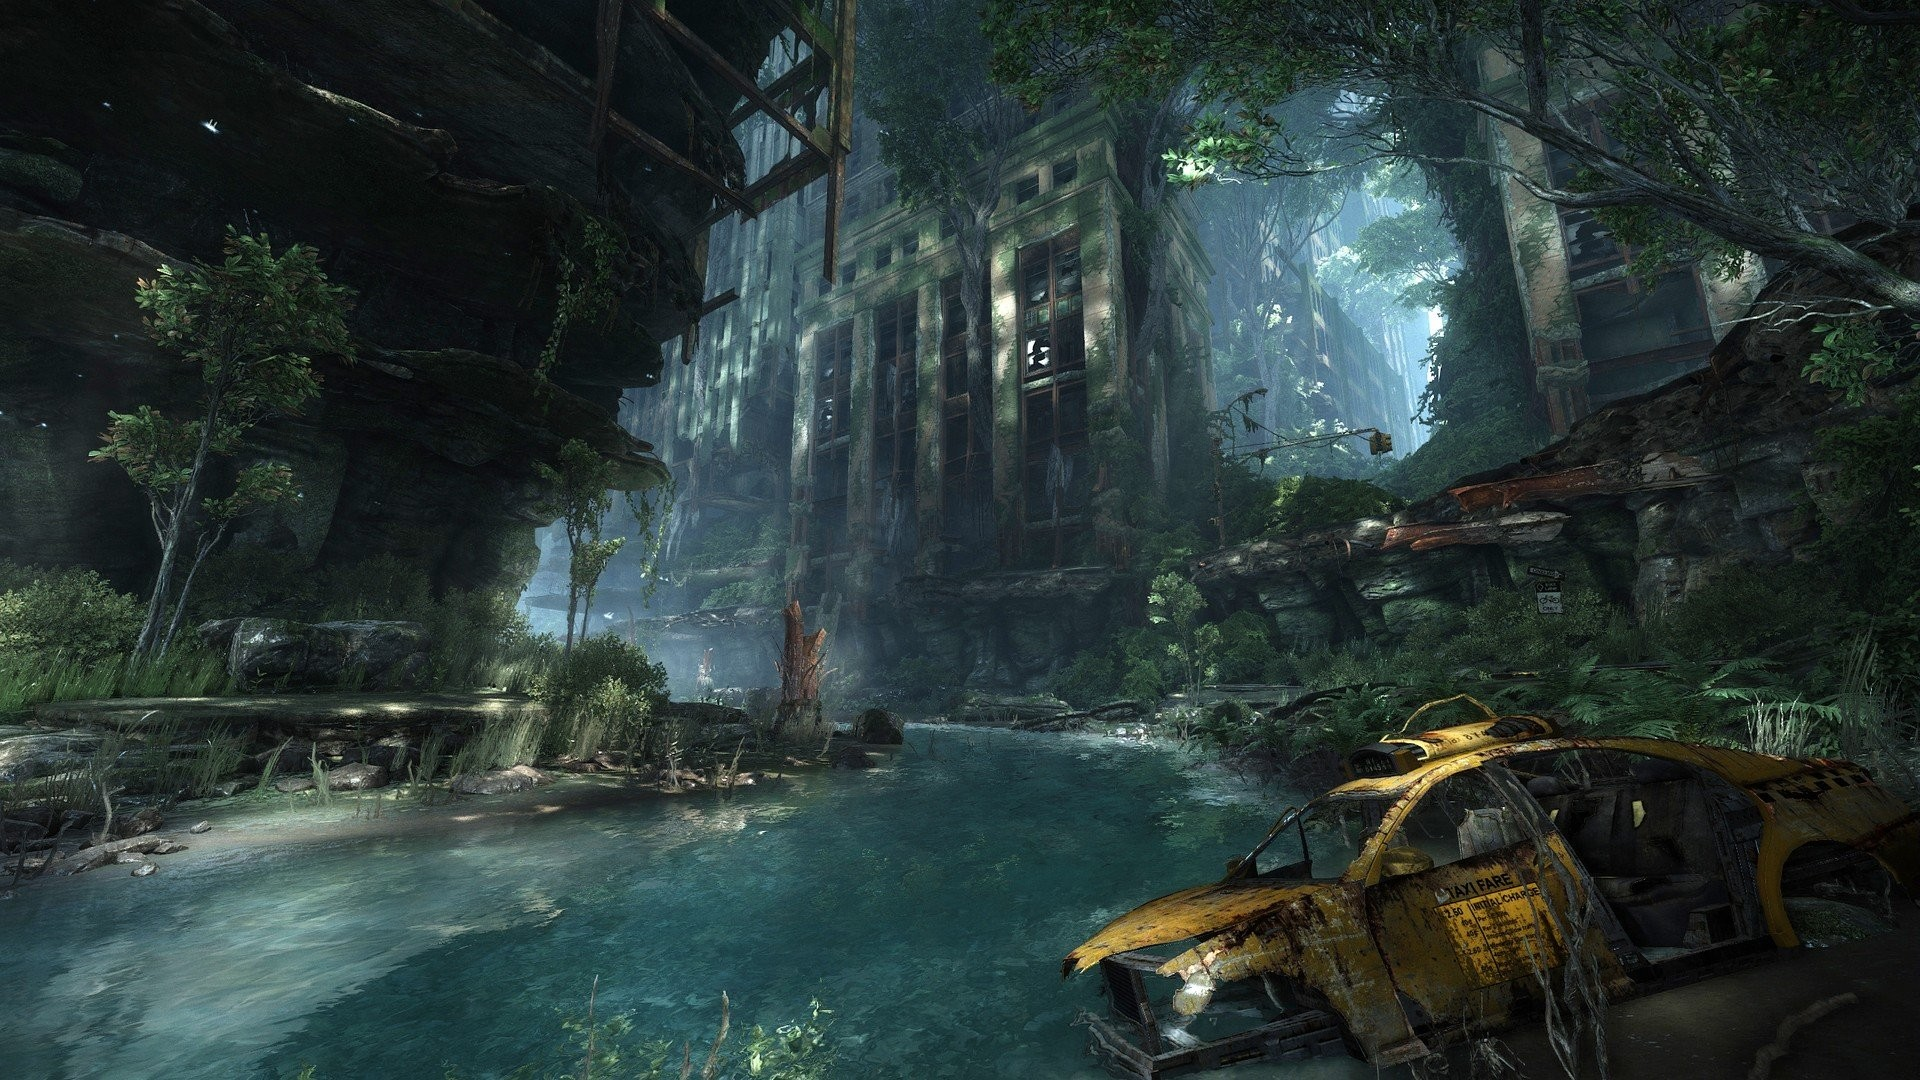 Water video games Crysis destroyed abandoned city abandoned Crysis 3 game  wallpaper     287109   WallpaperUP